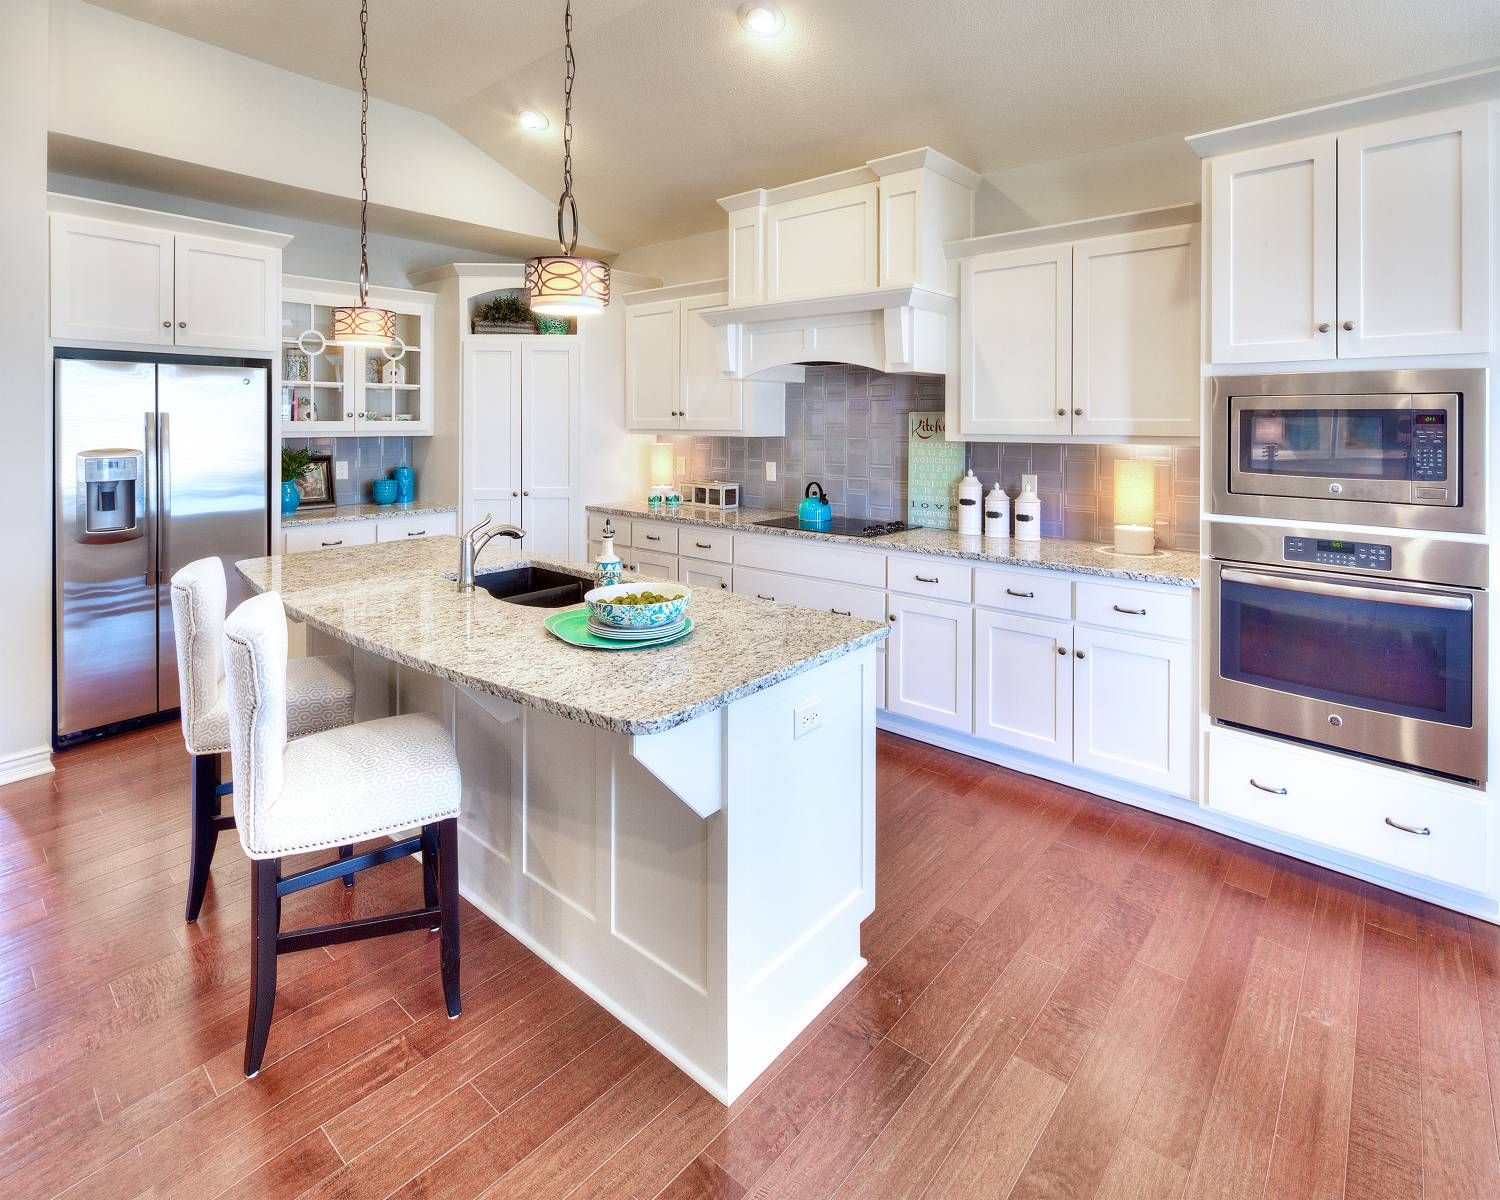 White Cabinetry Light Wood Floor And Stainless Steel Appliances